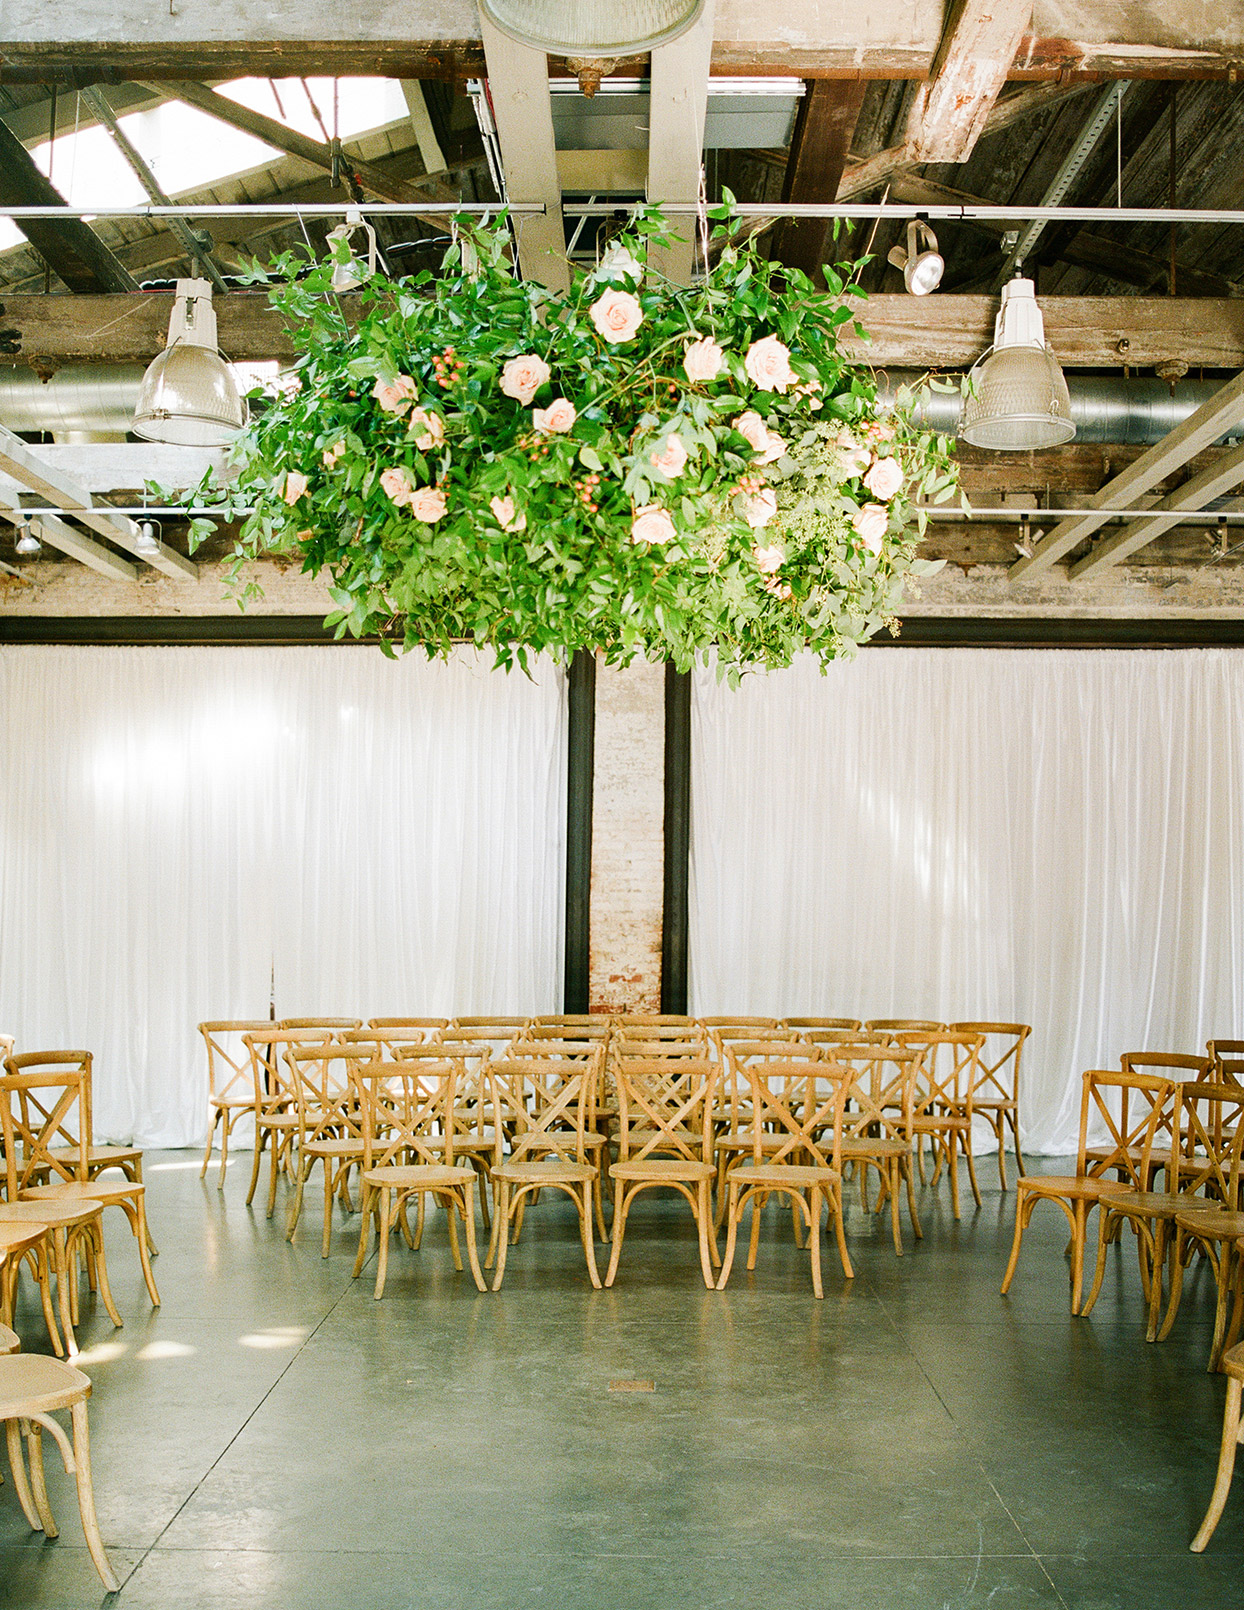 shelby david wedding industrial ceremony space with floral hanging